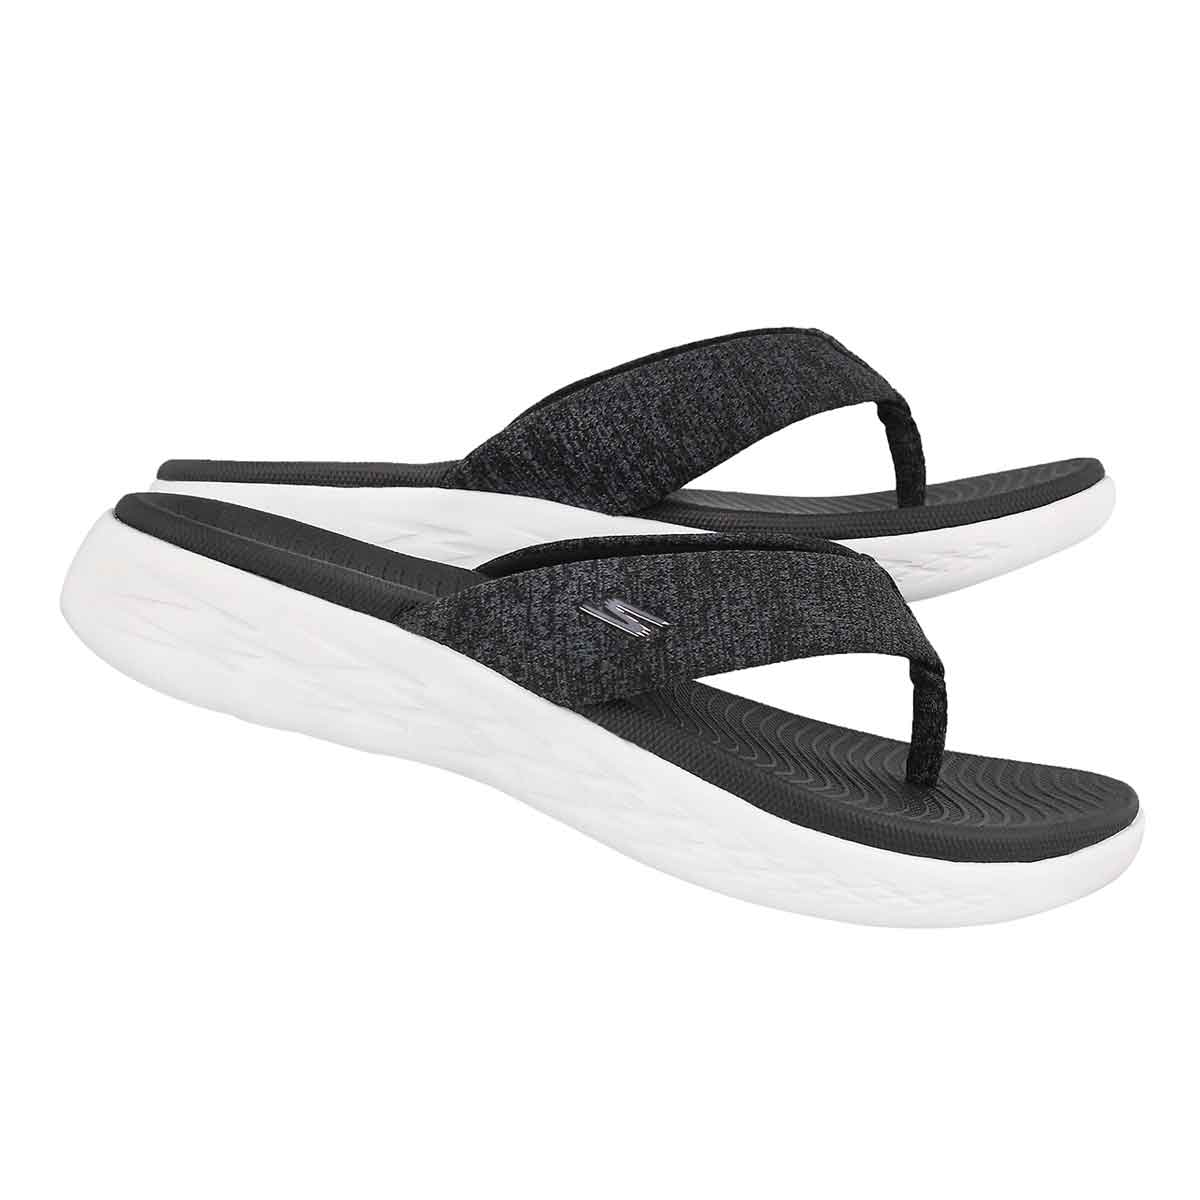 Lds On-The-Go 600 black flip flop